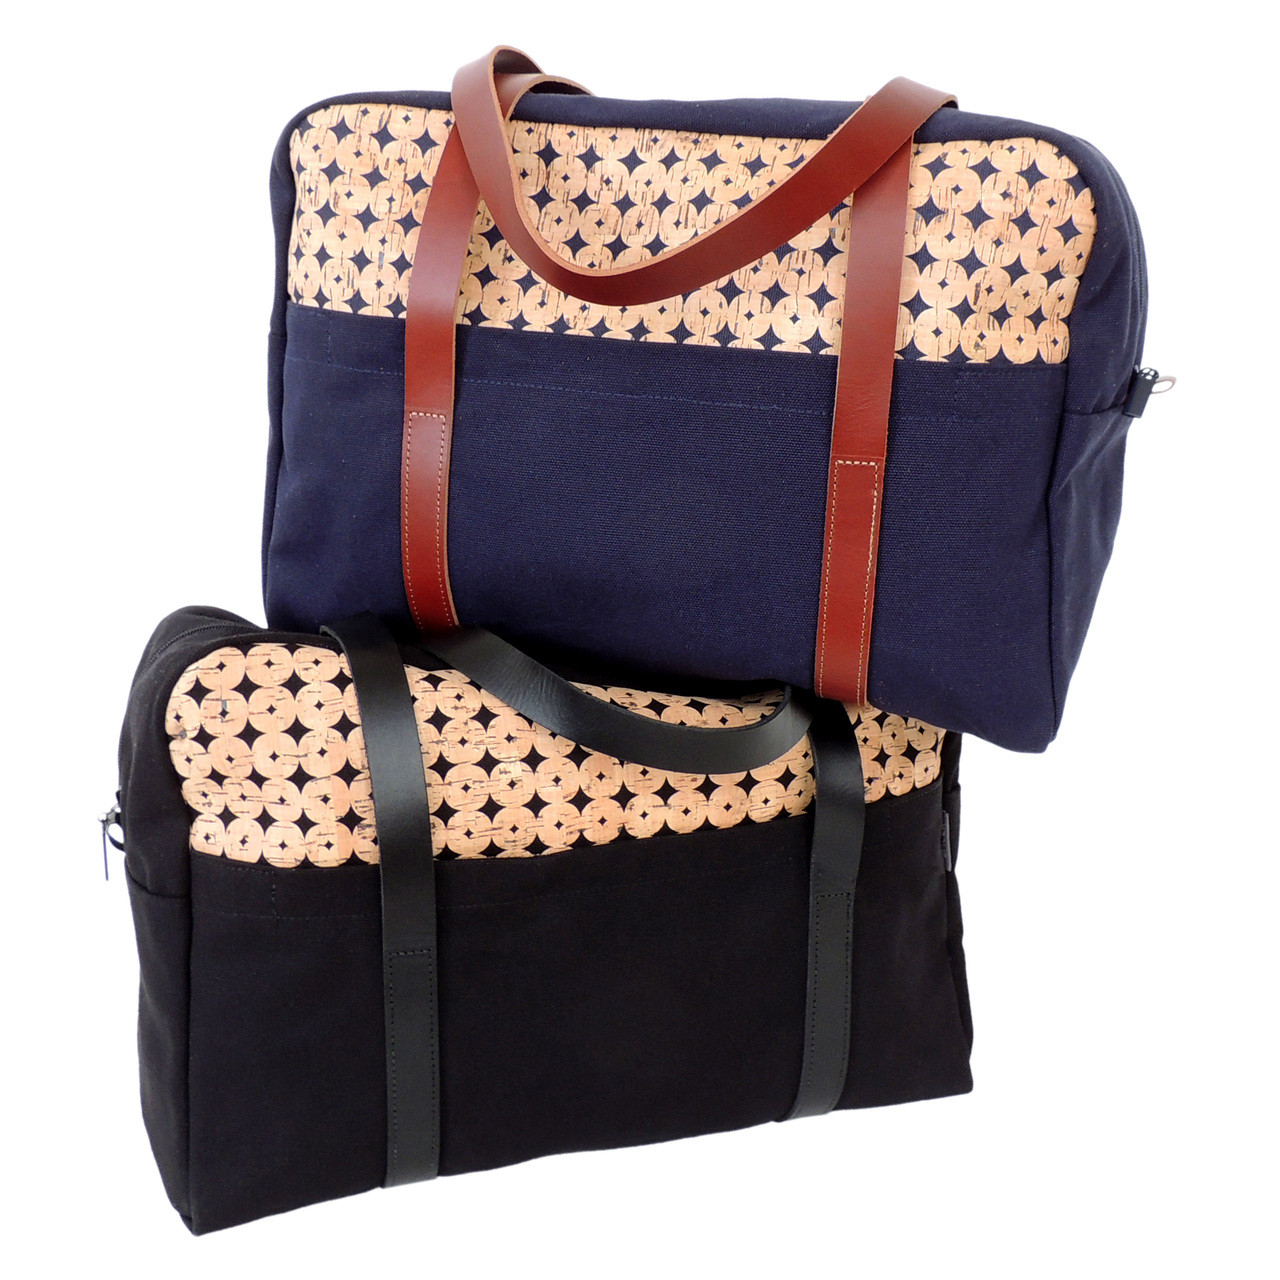 Overnight Bags in Black and Navy Cork Dots